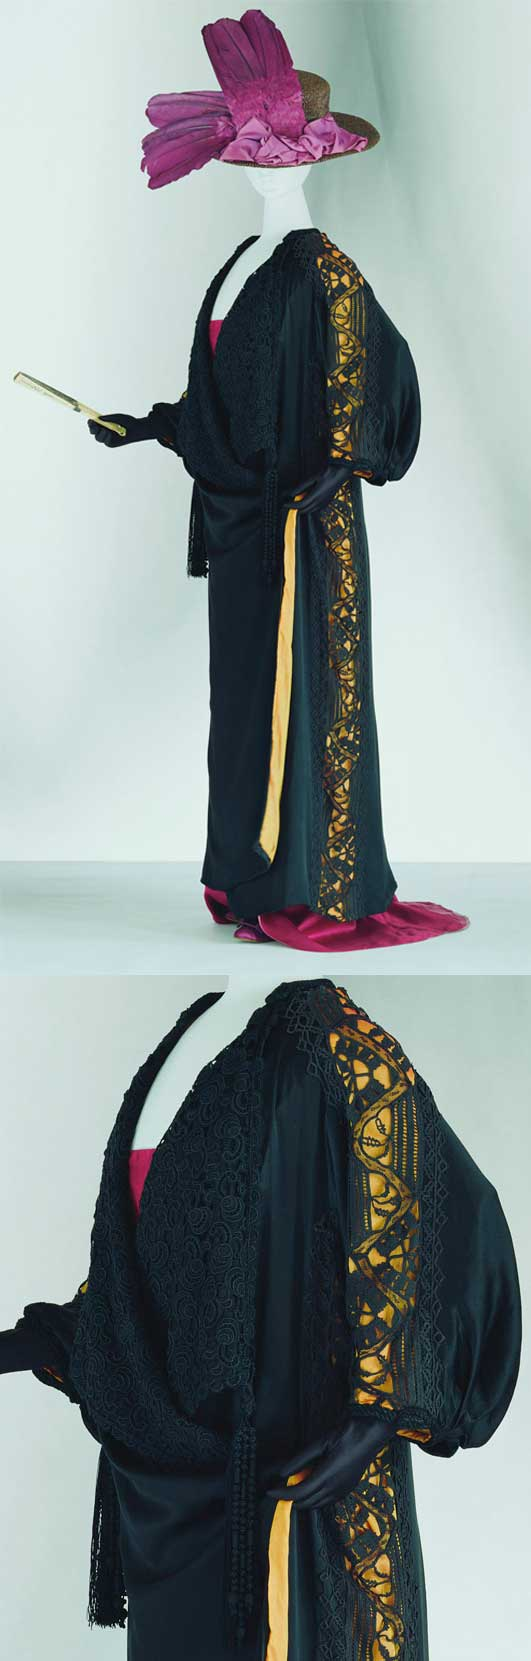 """Coat, Paul Poiret, 1906-1909. Silk satin, kimono sleeves, rectangular flat form like kimono, crochet and bobbin lace, black lace lapel with tassel, yellow silk """"habutae"""" lining. Poiret called this a """"kimono coat."""" The pieces were cut straight. Poiret introduced loose-fitting silhouette coats like this at the same time as dresses that had a new silhouette with the support point at the shoulders instead of the waist. Kyoto Costume Institute."""